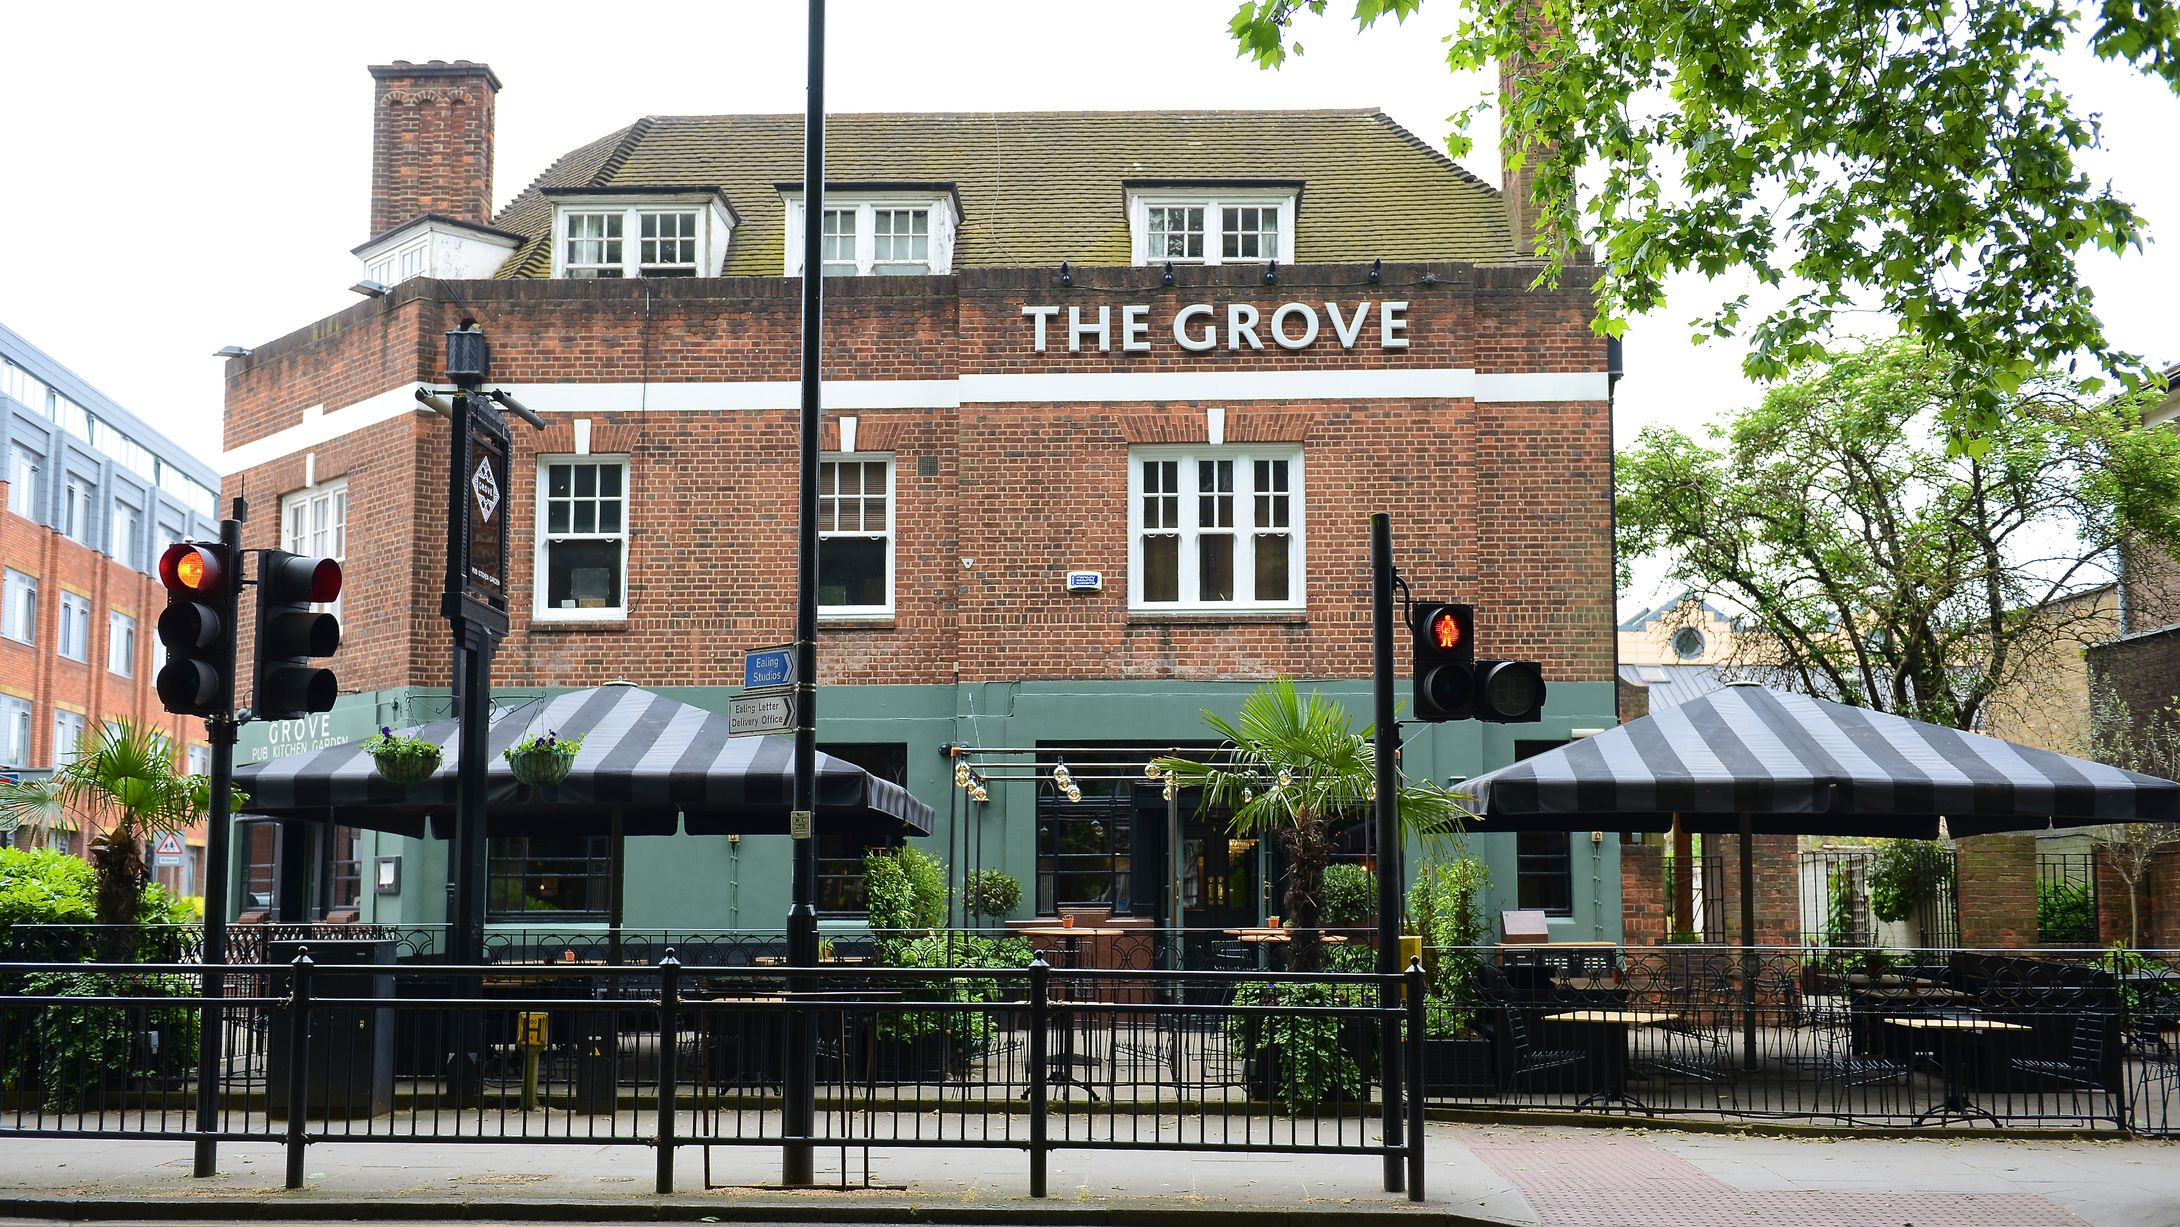 The Grove, Ealing